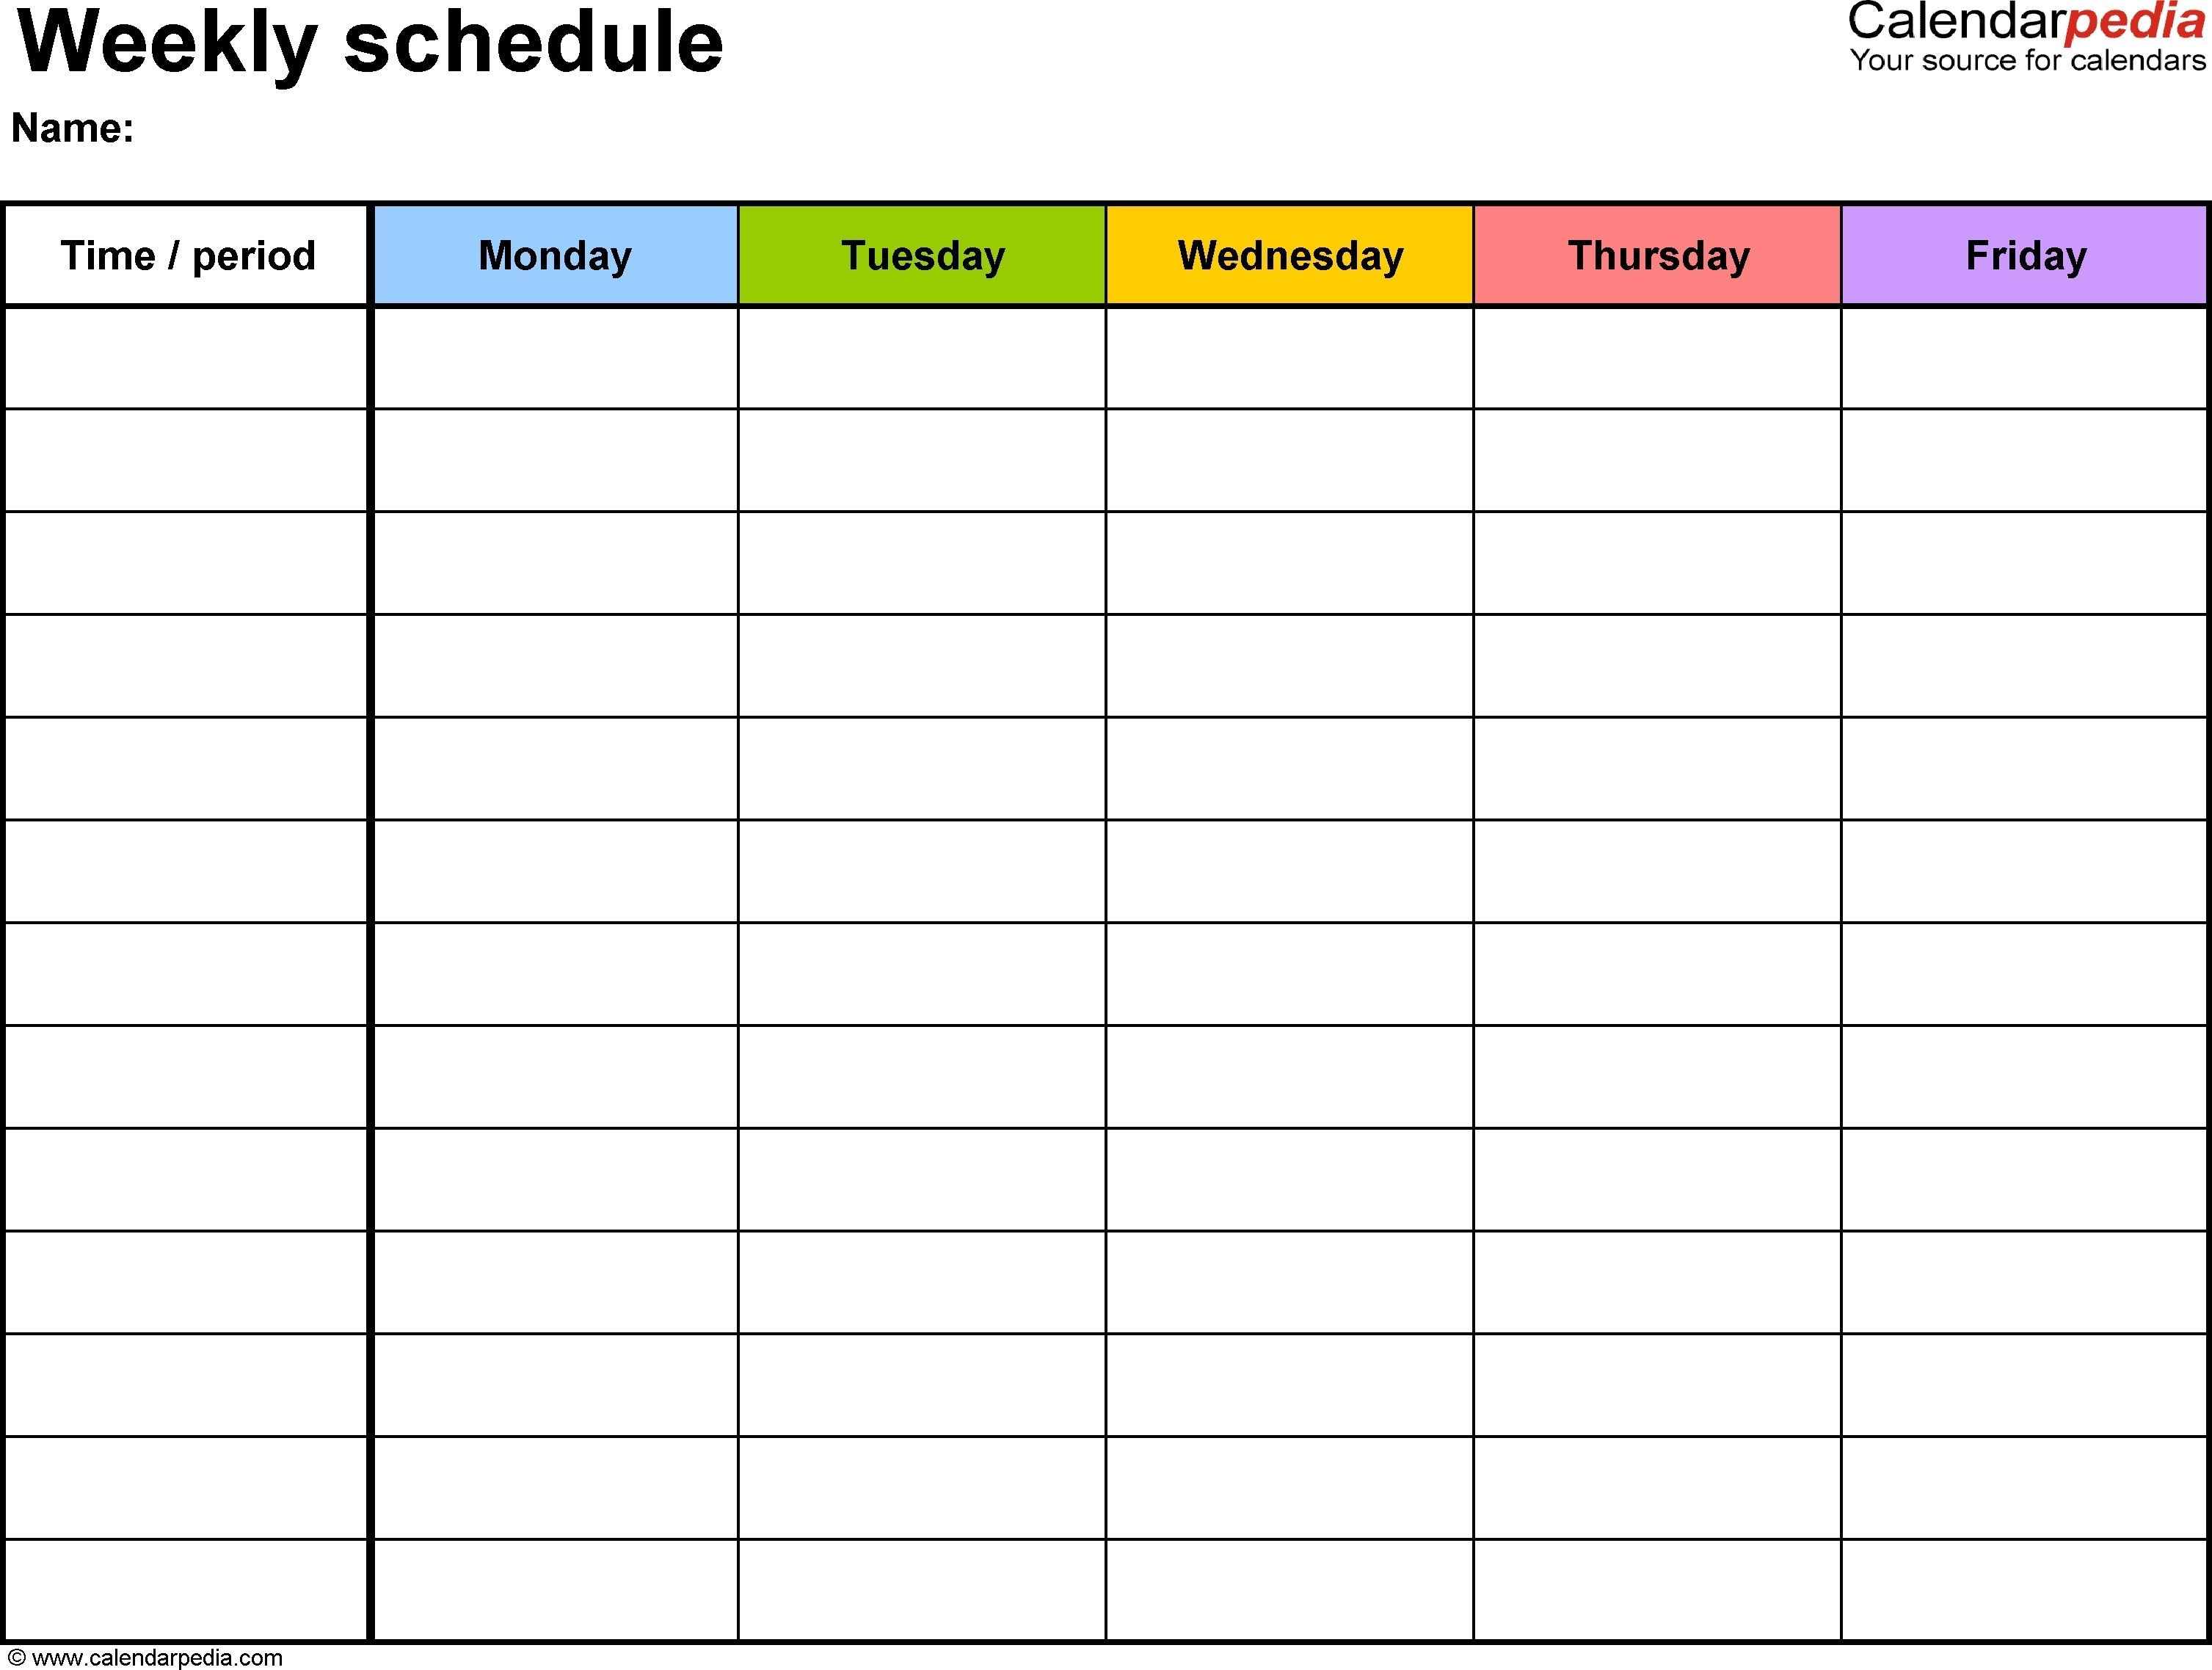 Calendar Template With Time Slots